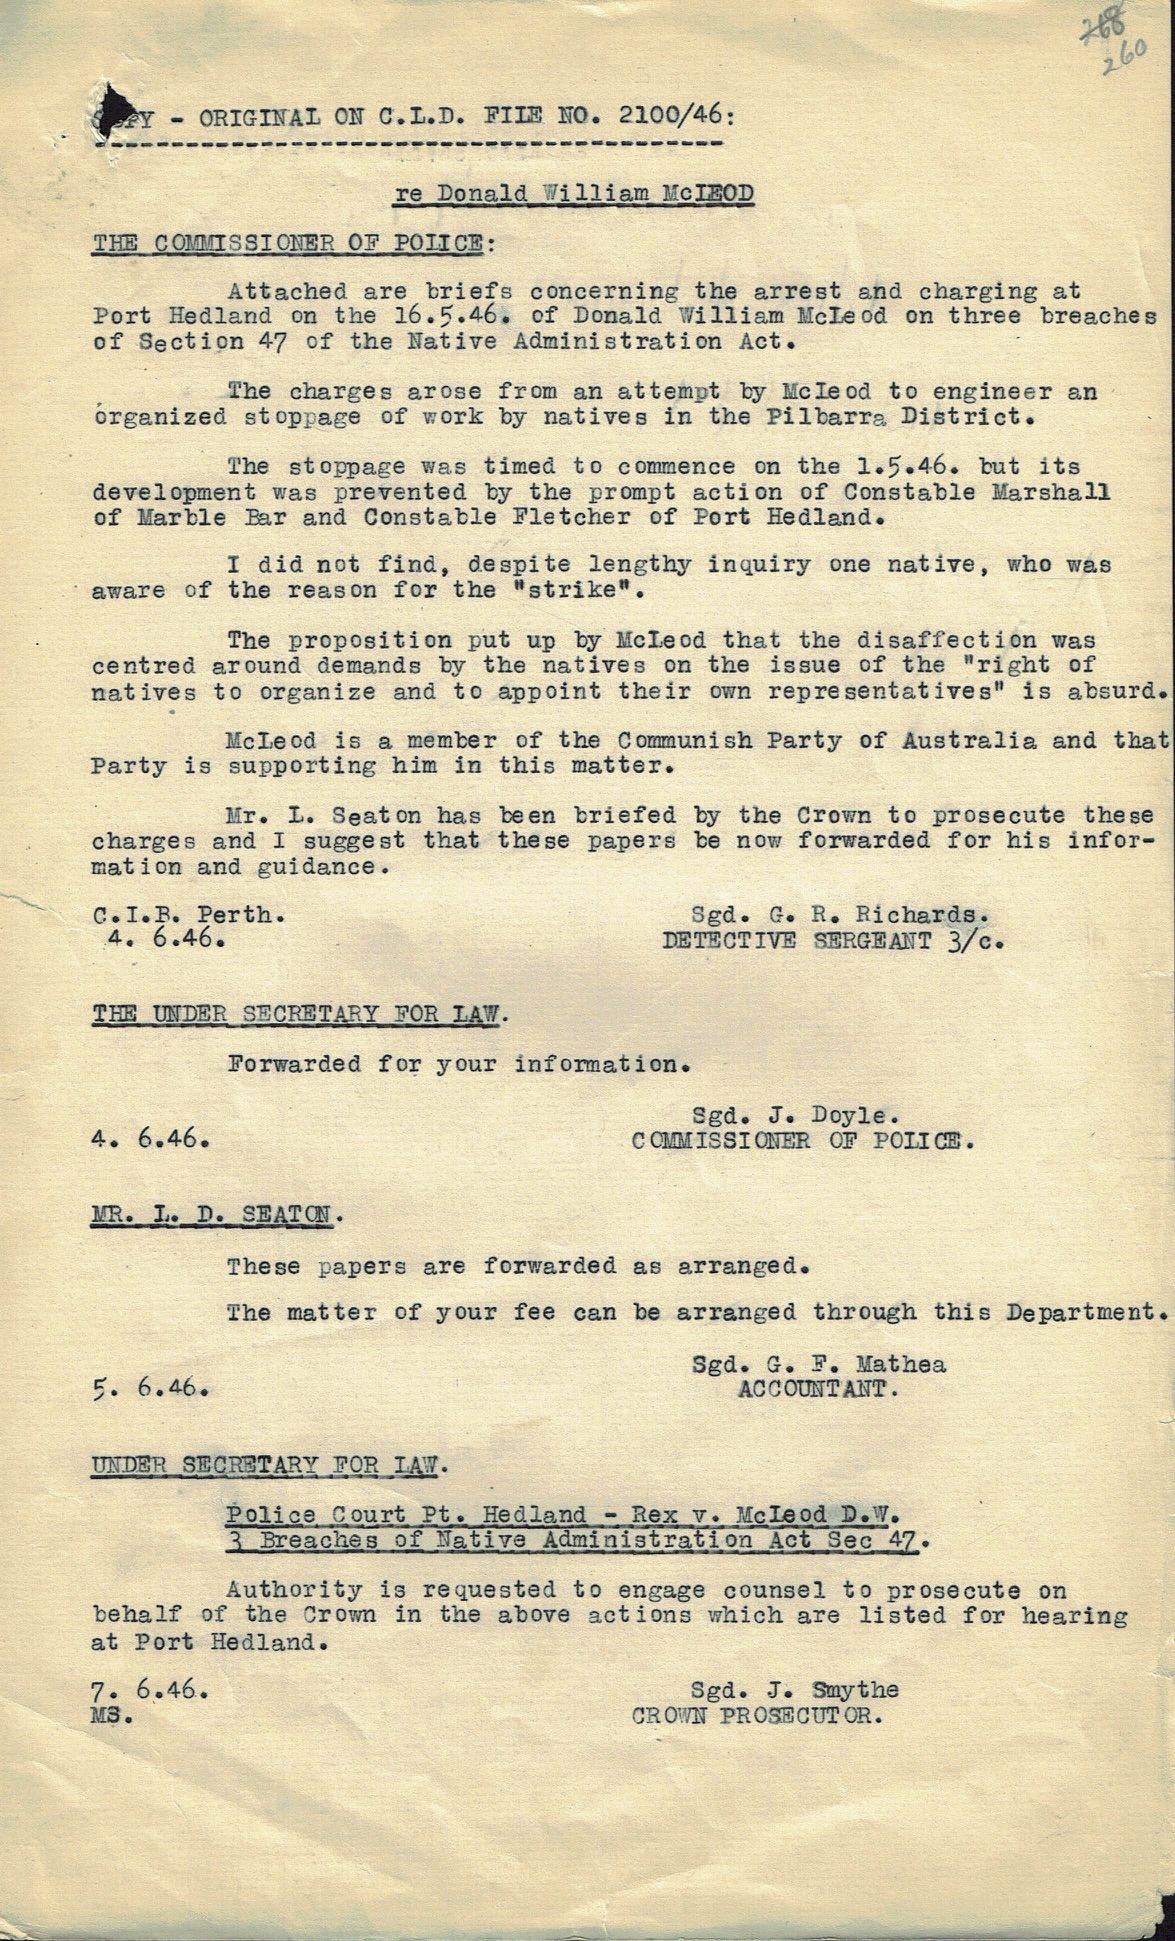 Richards to Commissioner of Police, 4 June 1946